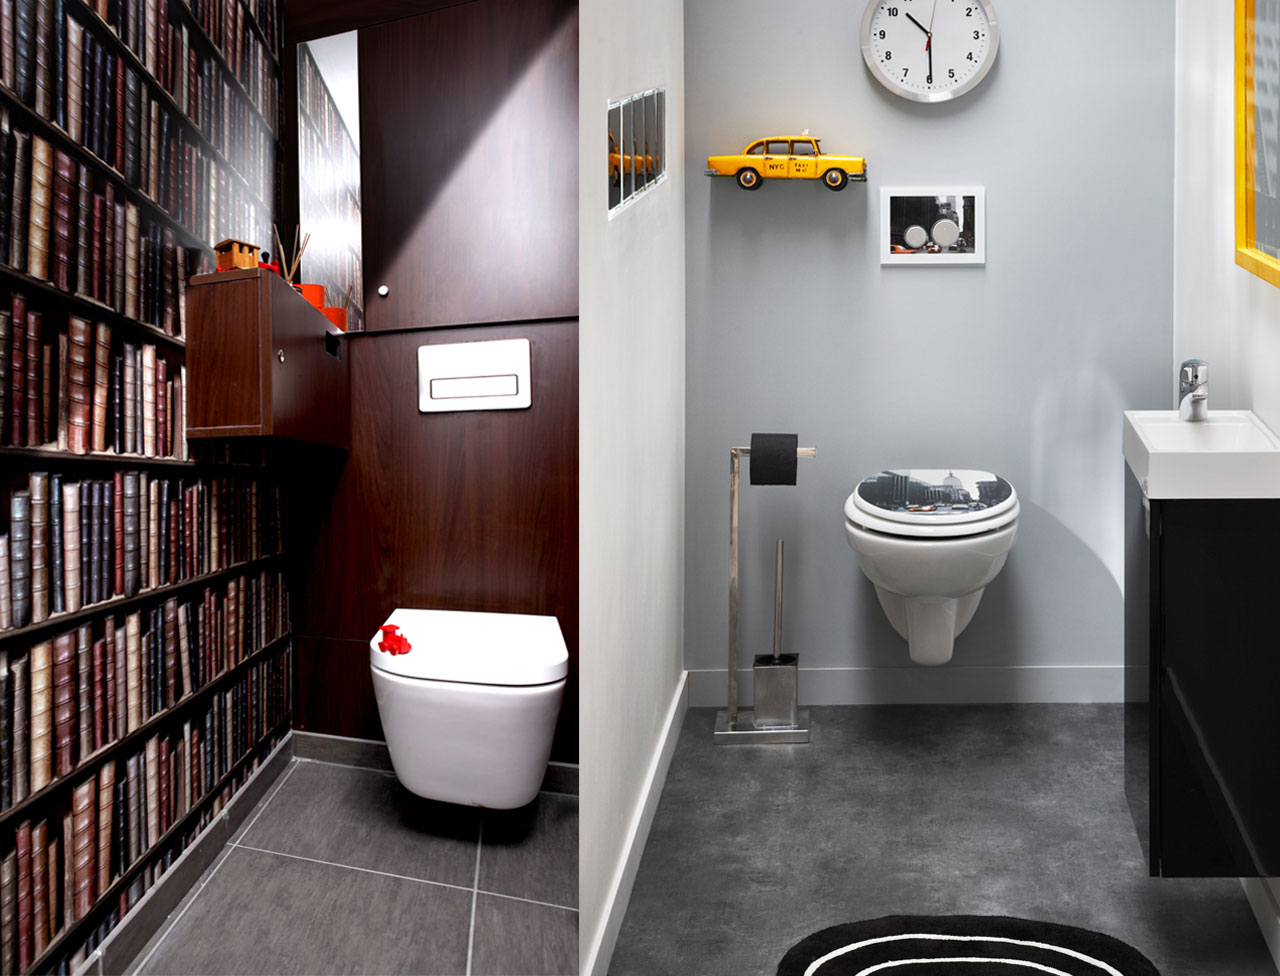 D coration interieur toilettes exemples d 39 am nagements for Idee deco design interieur